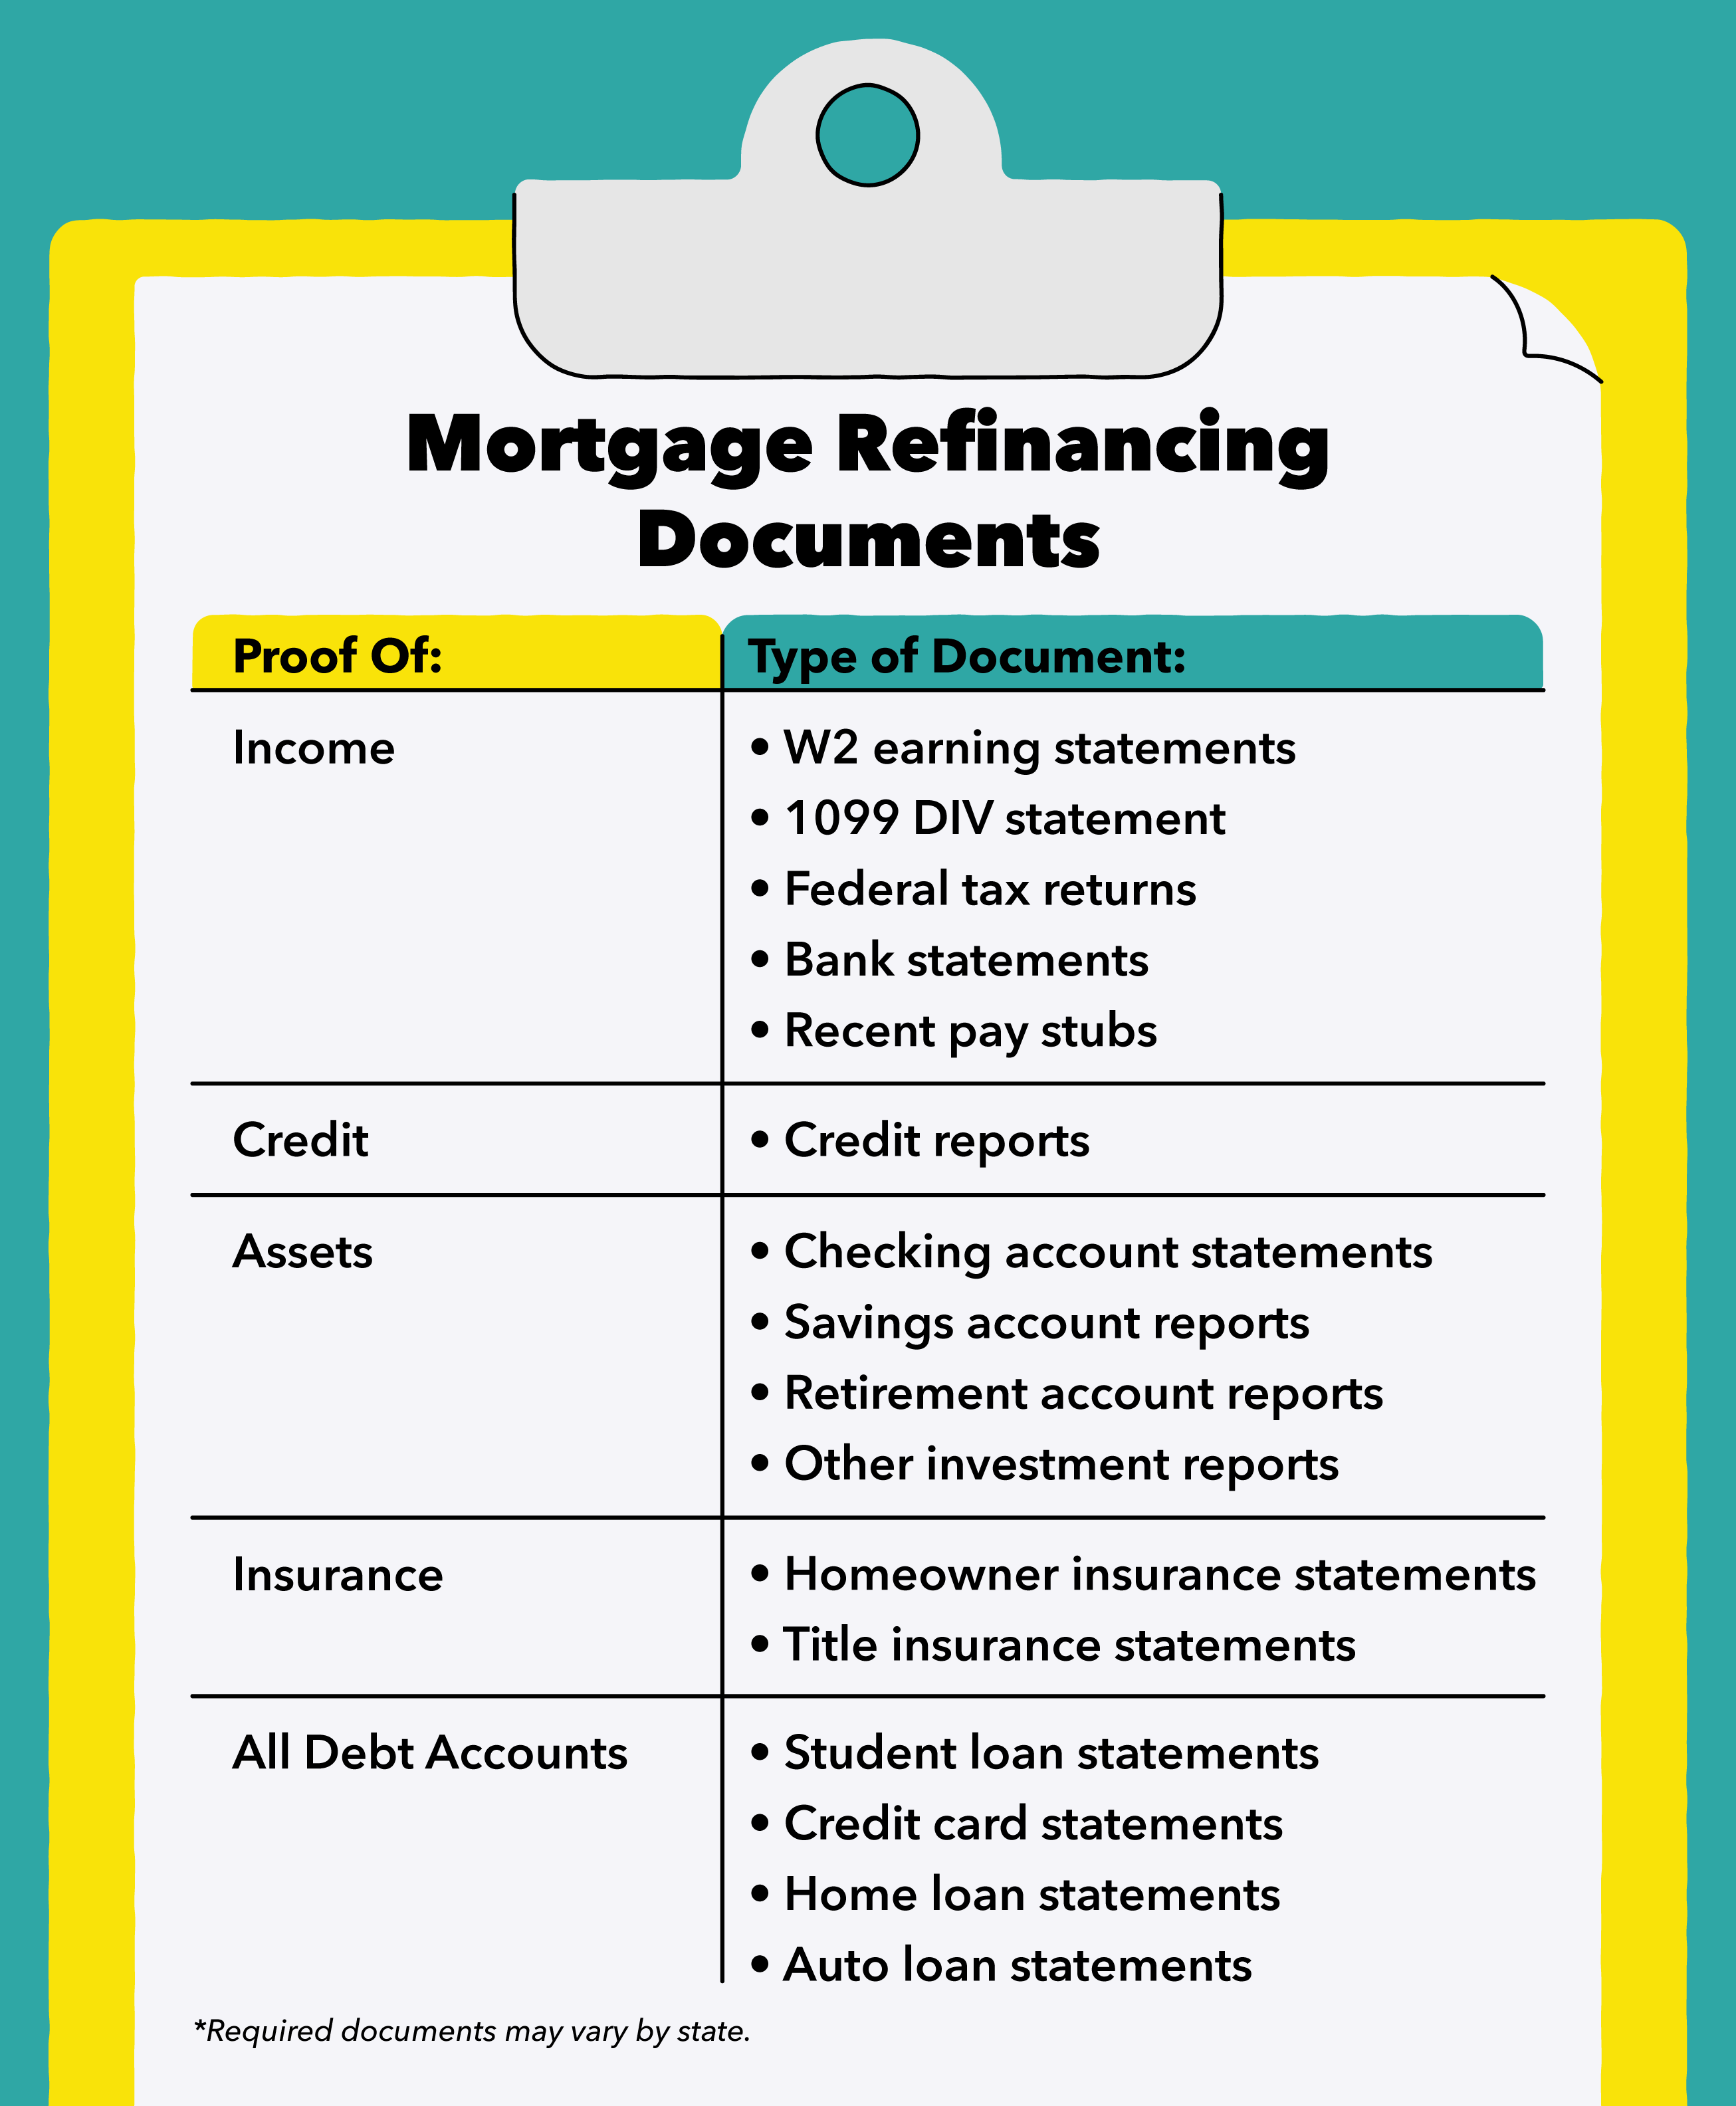 Mortgage Refinancing Documents